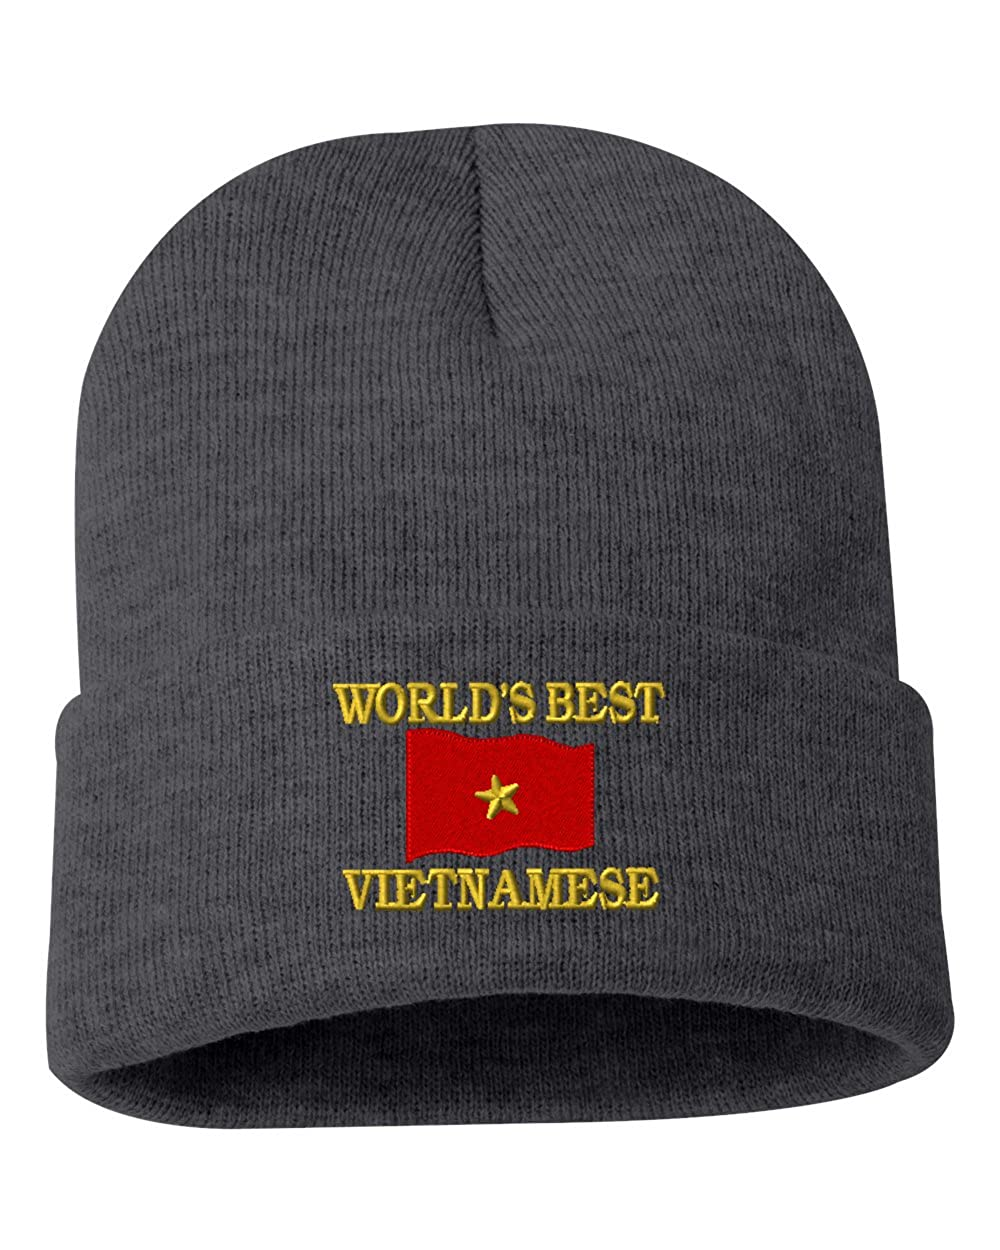 WORLDS BEST VIETNAMESE Custom Personalized Embroidery Embroidered Beanie